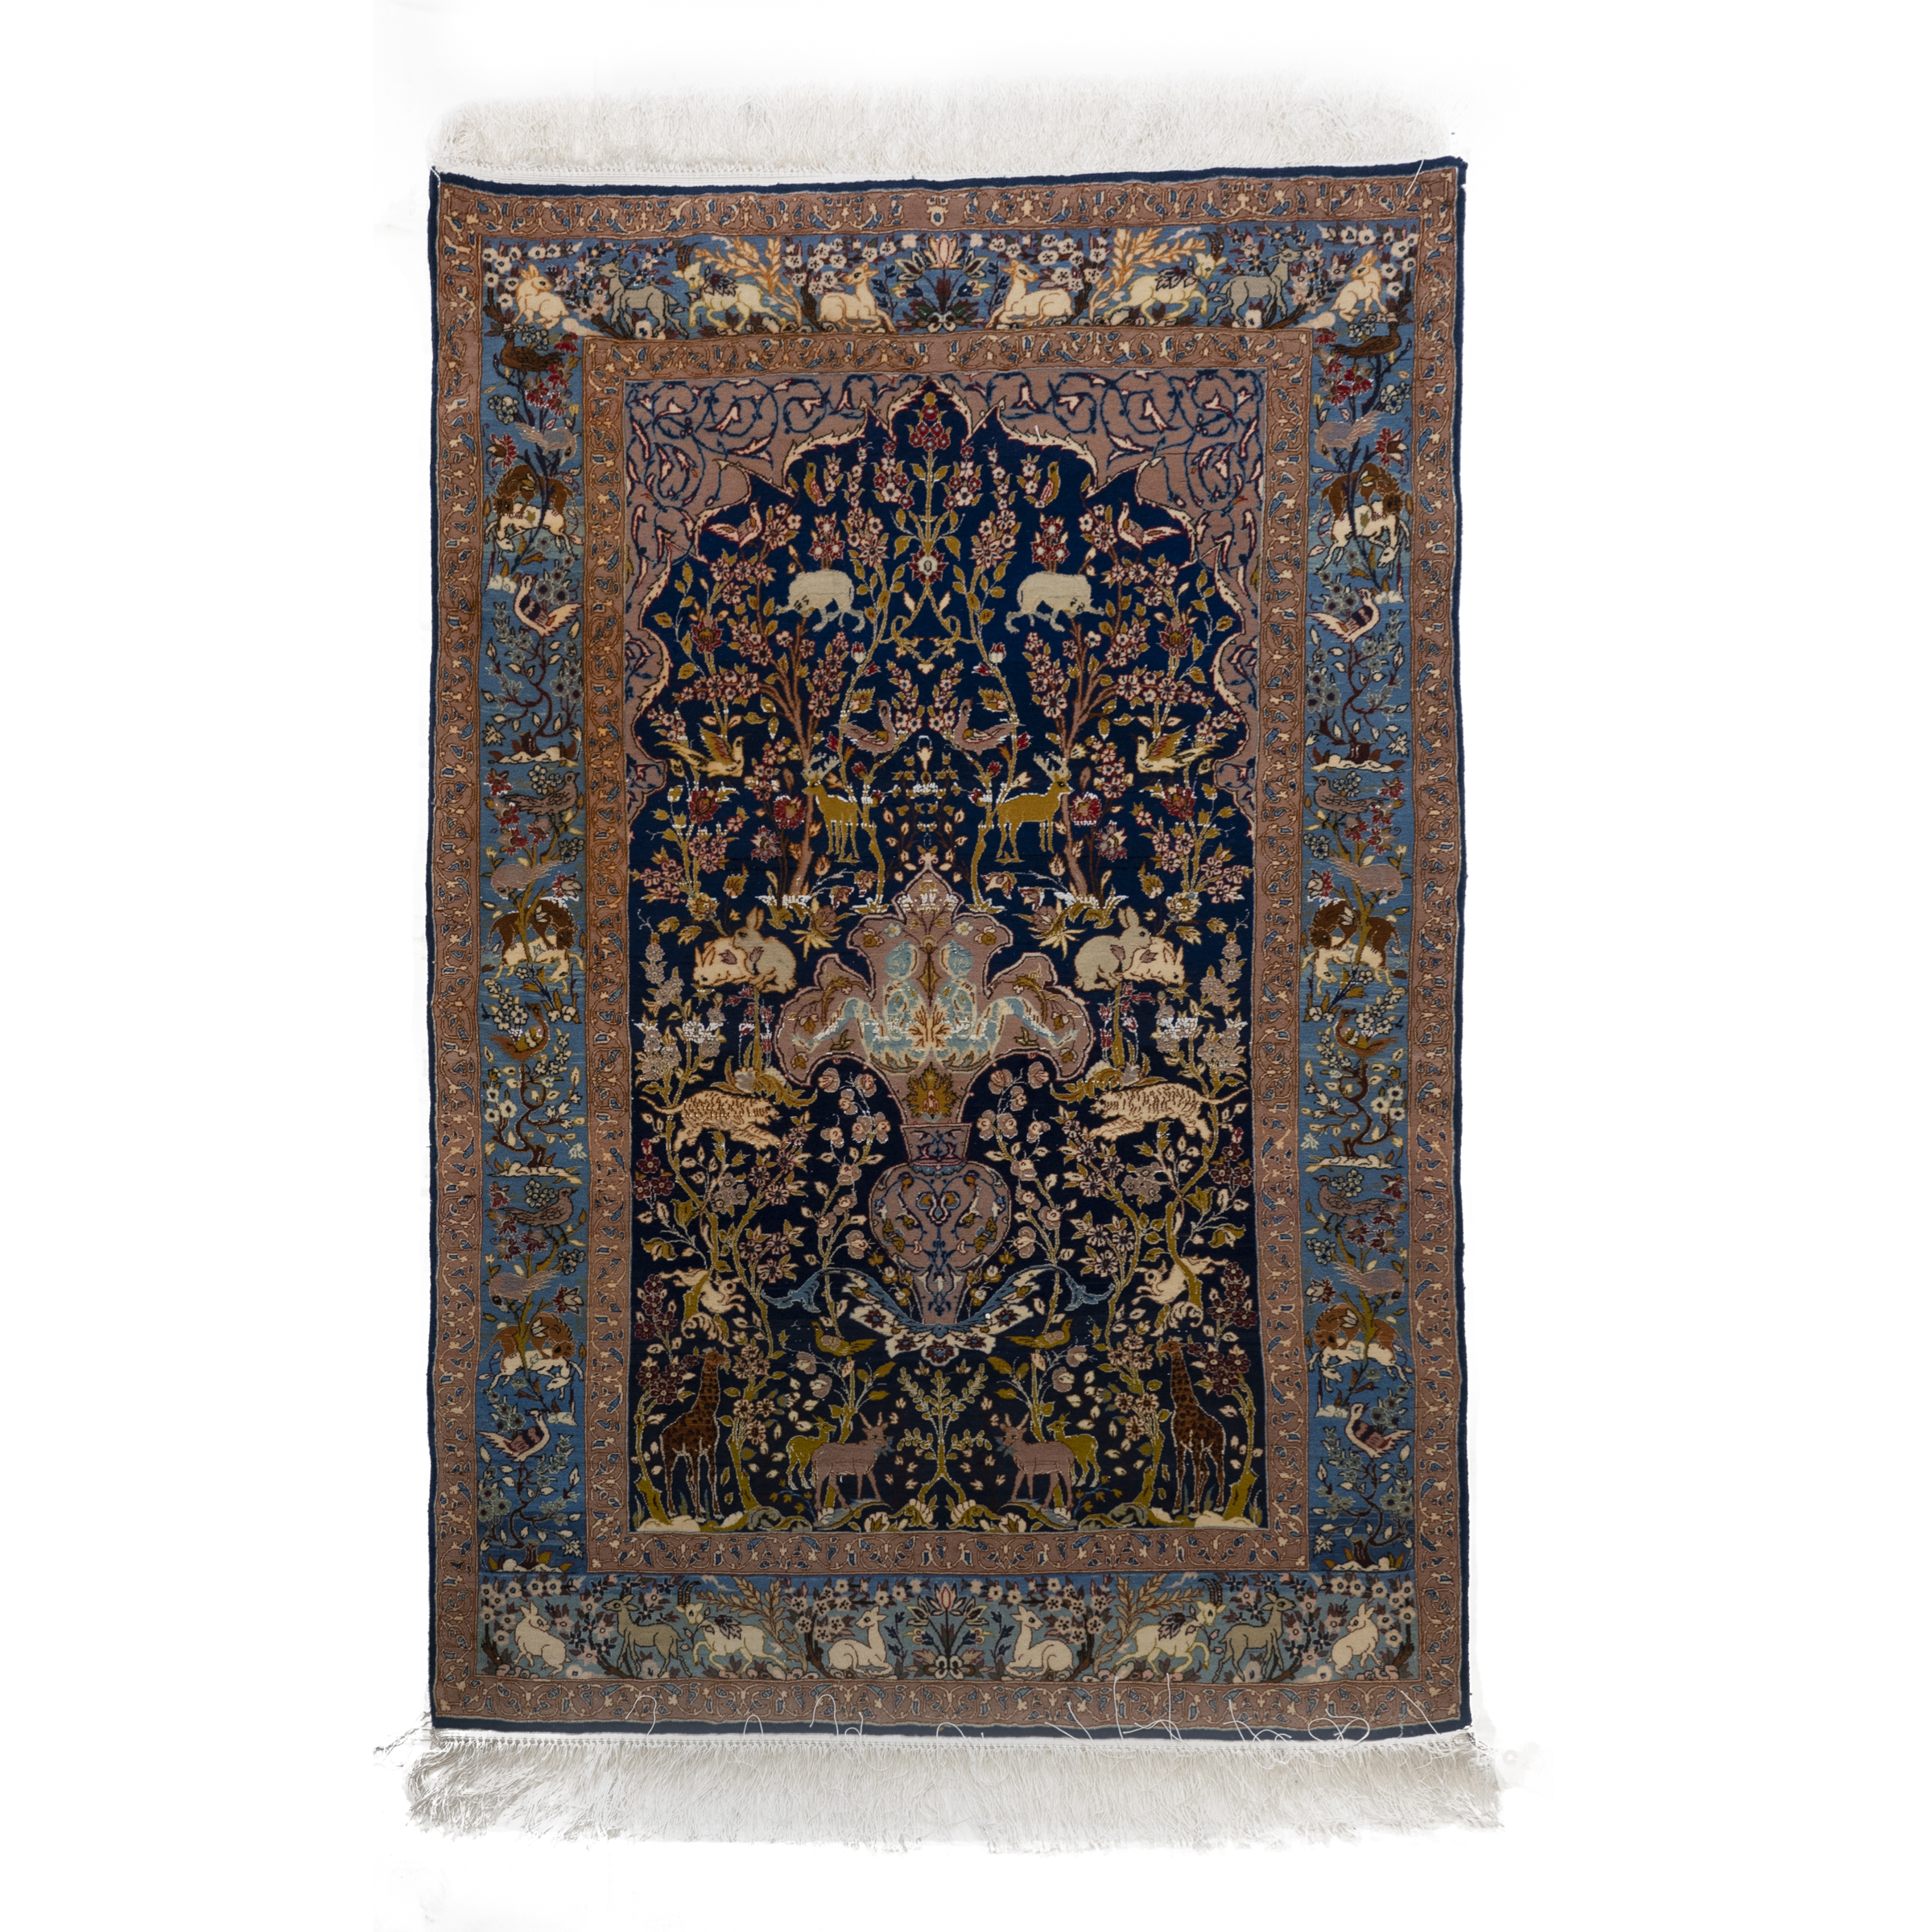 Modern Ispahan Wool and Silk Prayer  Rug, Persian